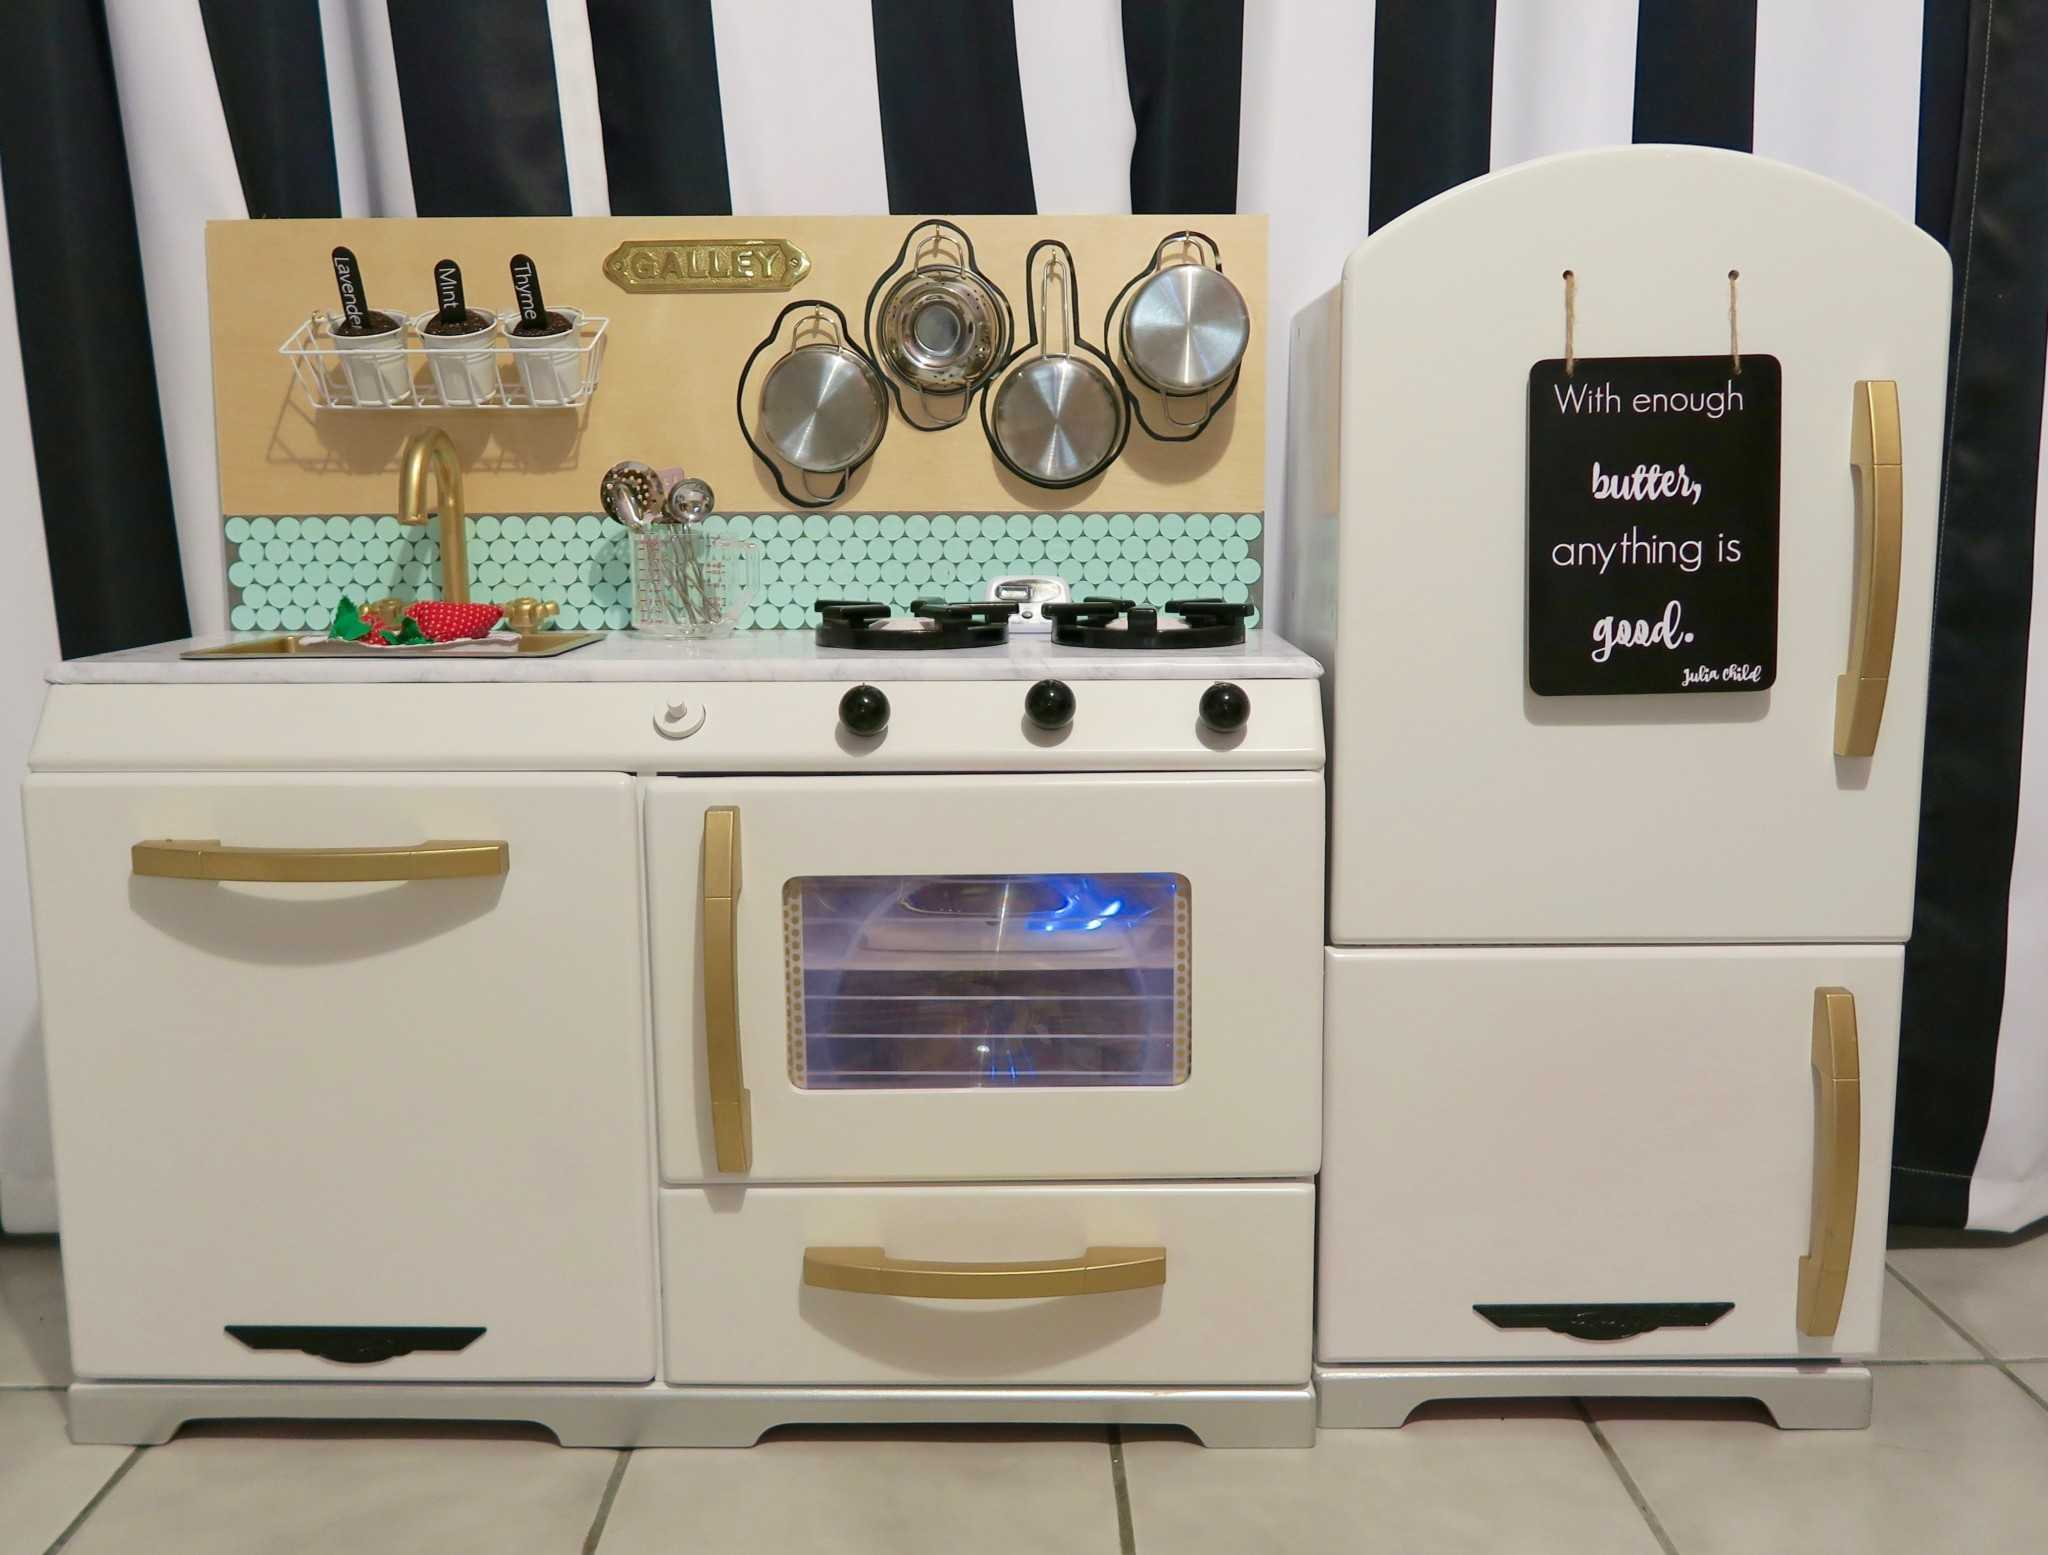 Playroom ideas and diy kid kitchen a host of things for Playroom kitchen ideas